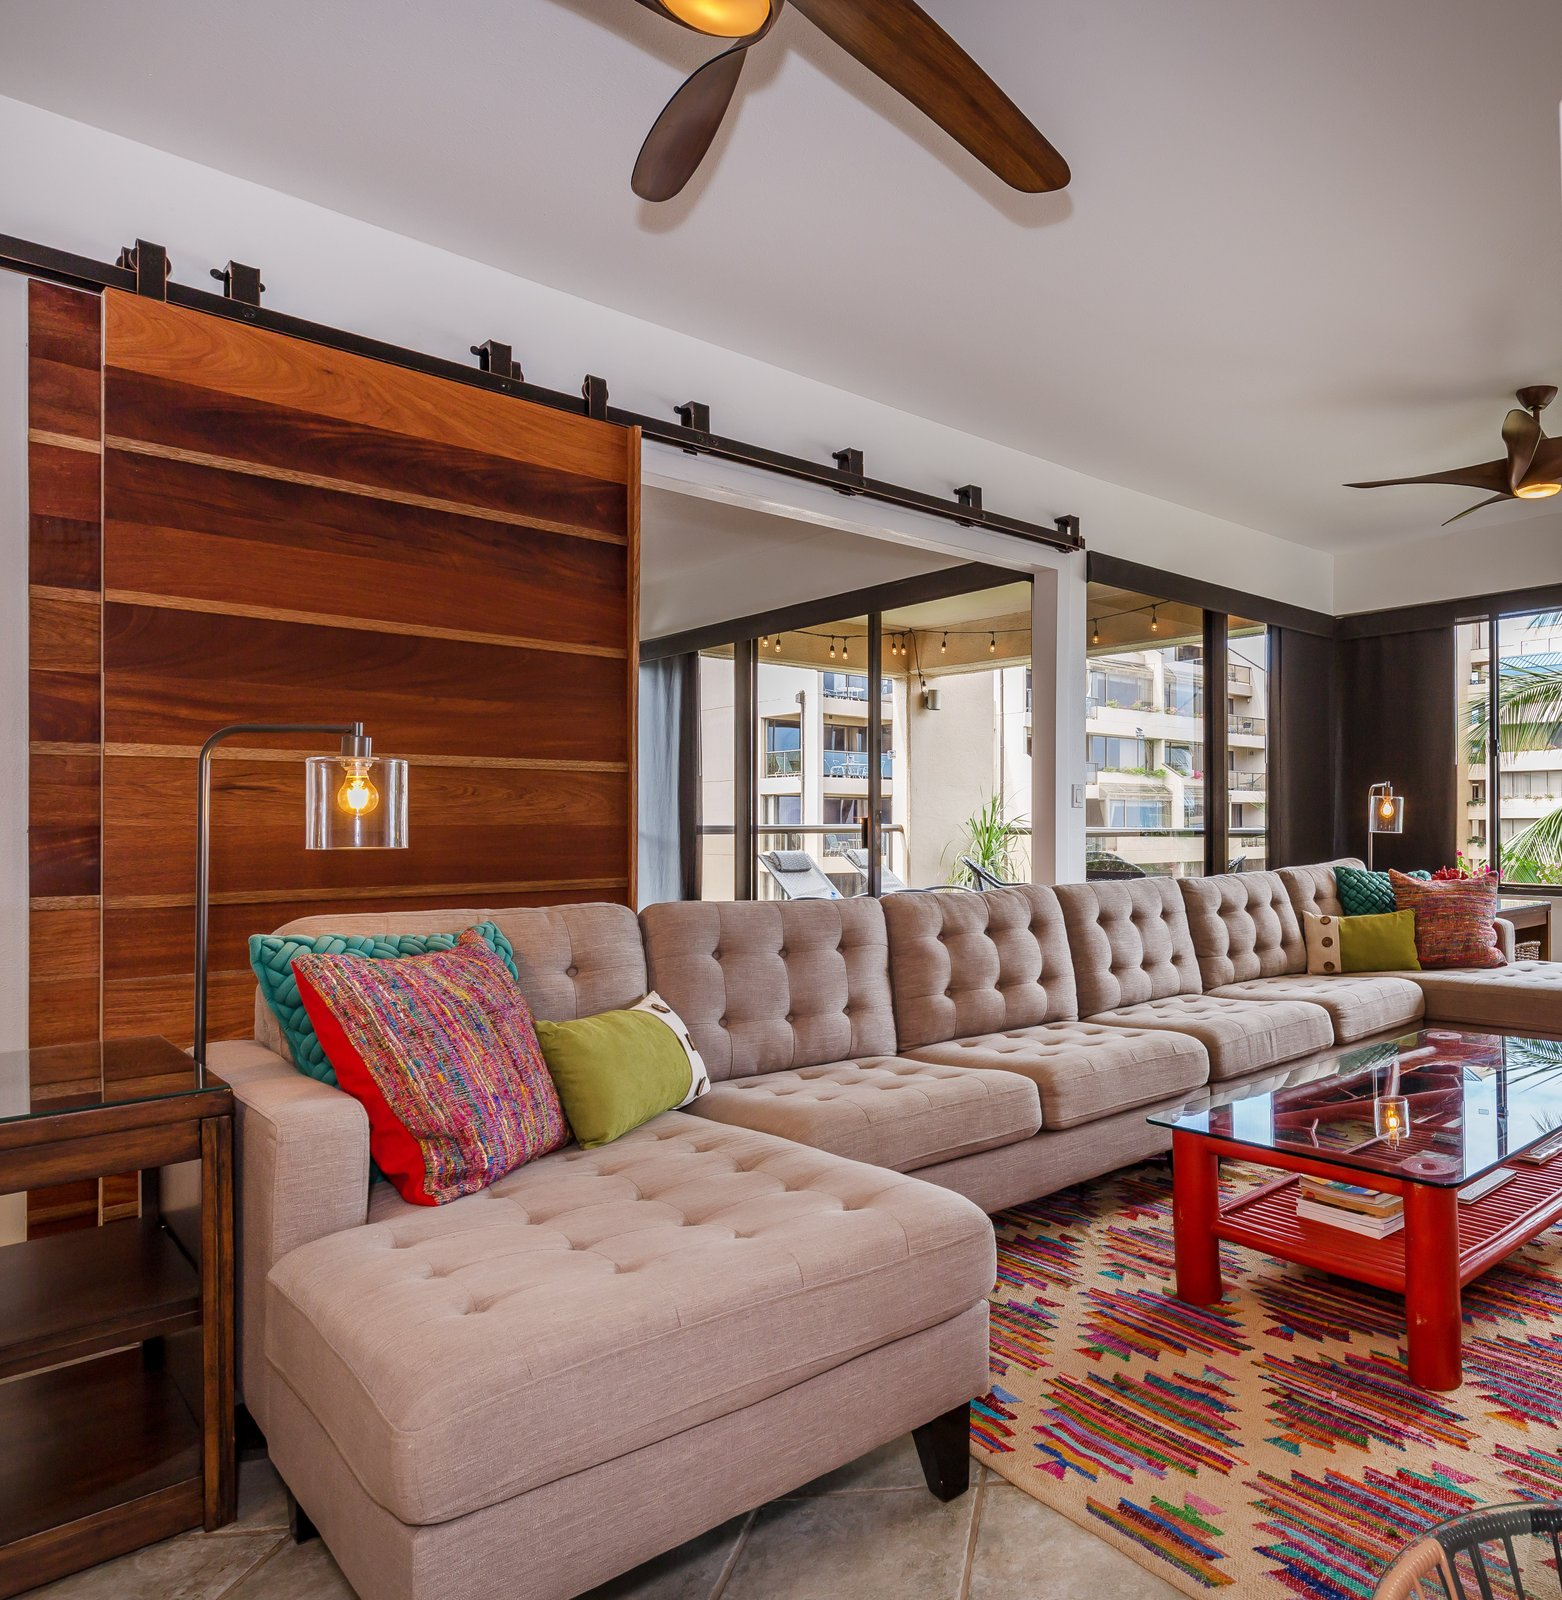 Living Room, Coffee Tables, End Tables, Sectional, Ceiling Lighting, Floor Lighting, and Ceramic Tile Floor Custom-built mahogany doors make a statement in the living room & give maximum privacy.  Maui Modern, Budget-Luxury Remodeled Vacation Rental